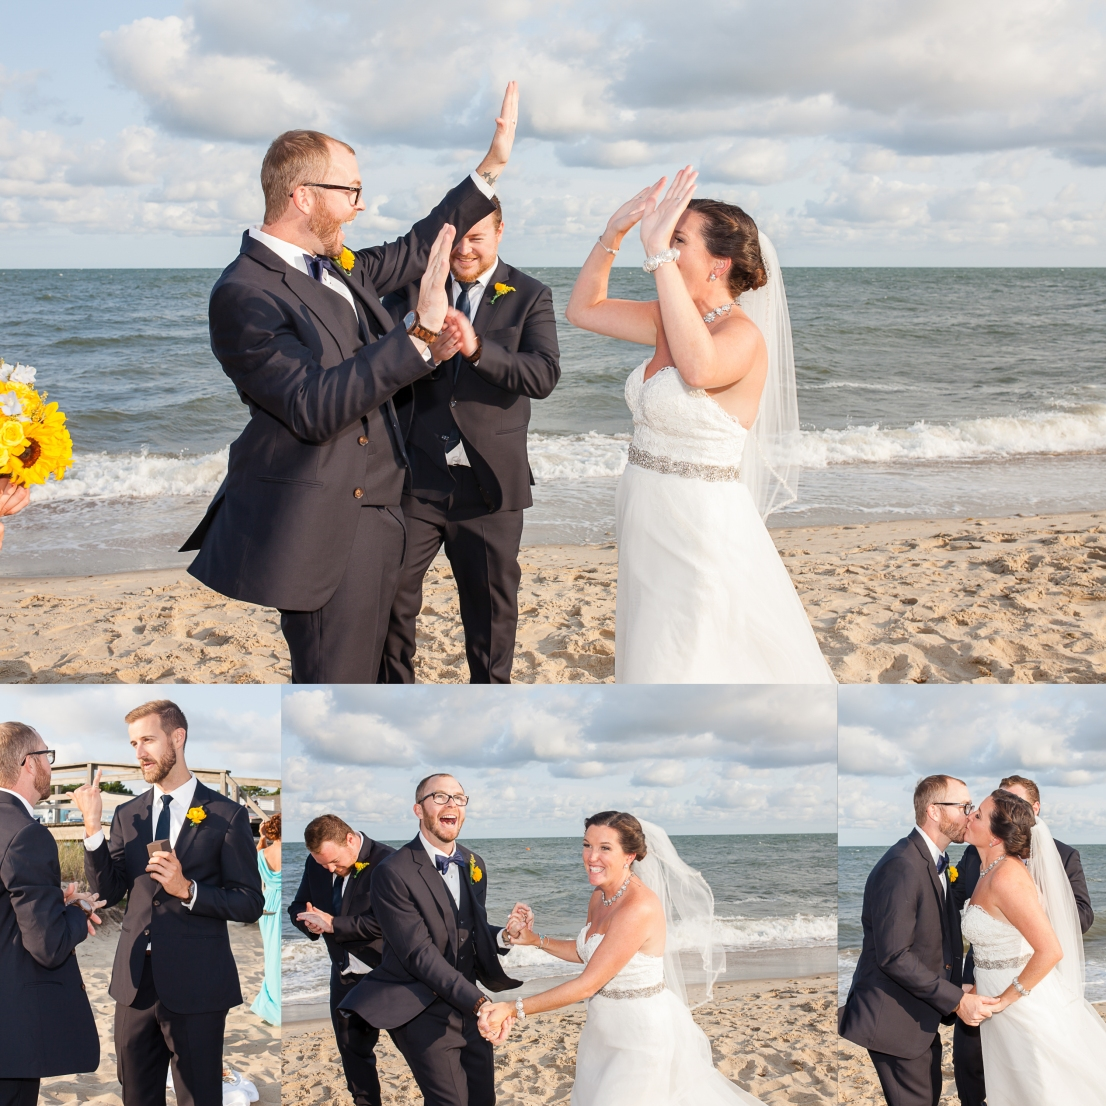 cape-cod-wedding-photographer-lisa-elizabeth-images-21-of-29